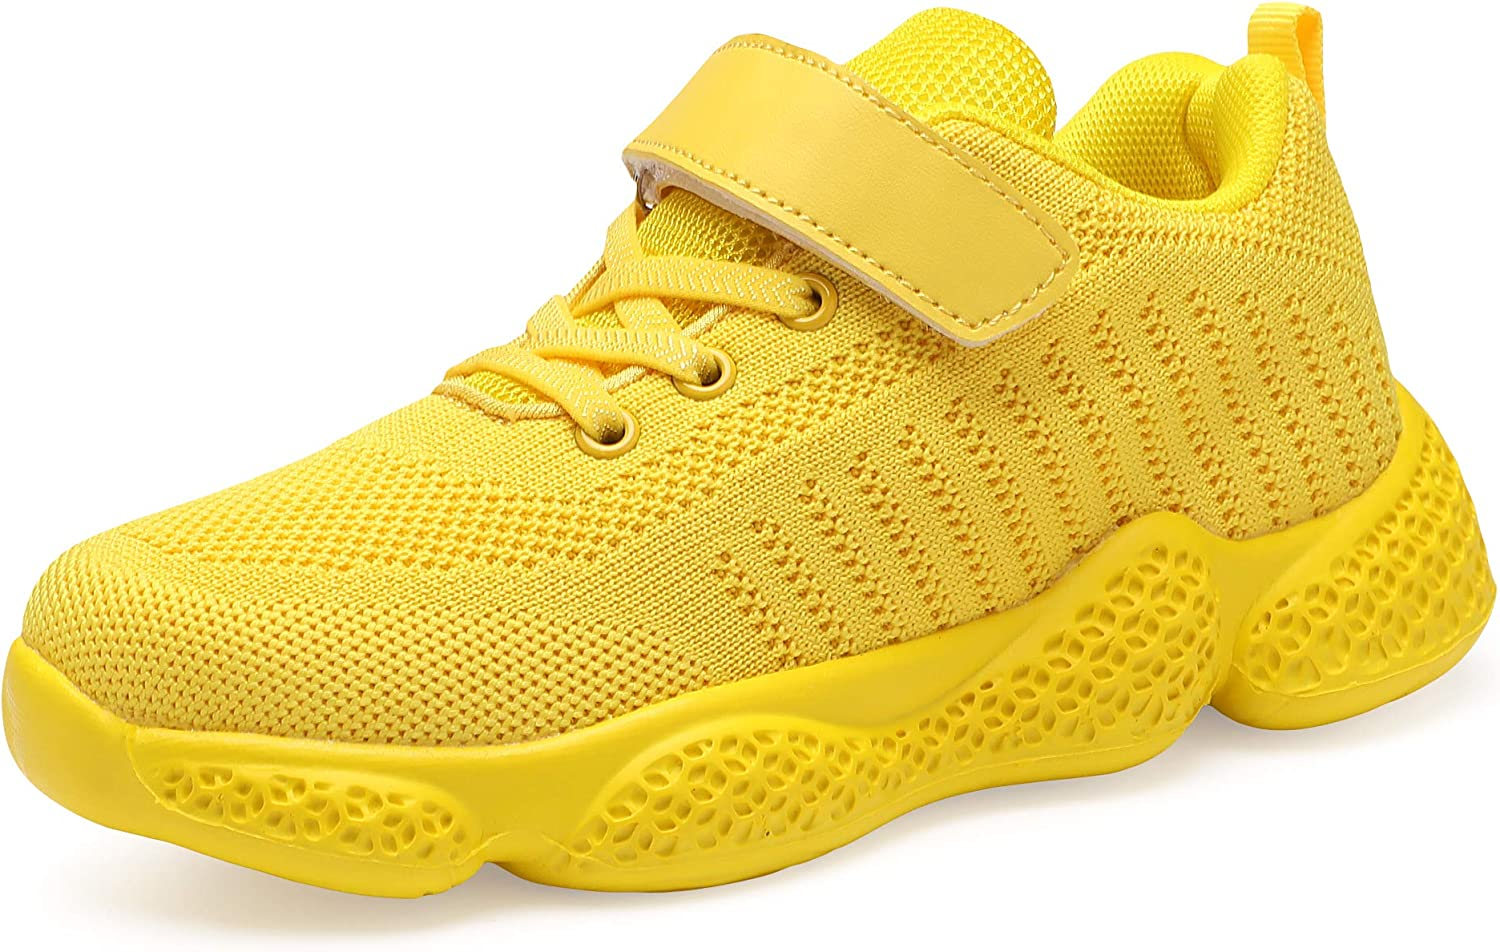 Casbeam Kids Breathable Sneakers Mesh Lightweight Easy Walk Casual Sport Strap Athletic Running Shoes for Boys Girls